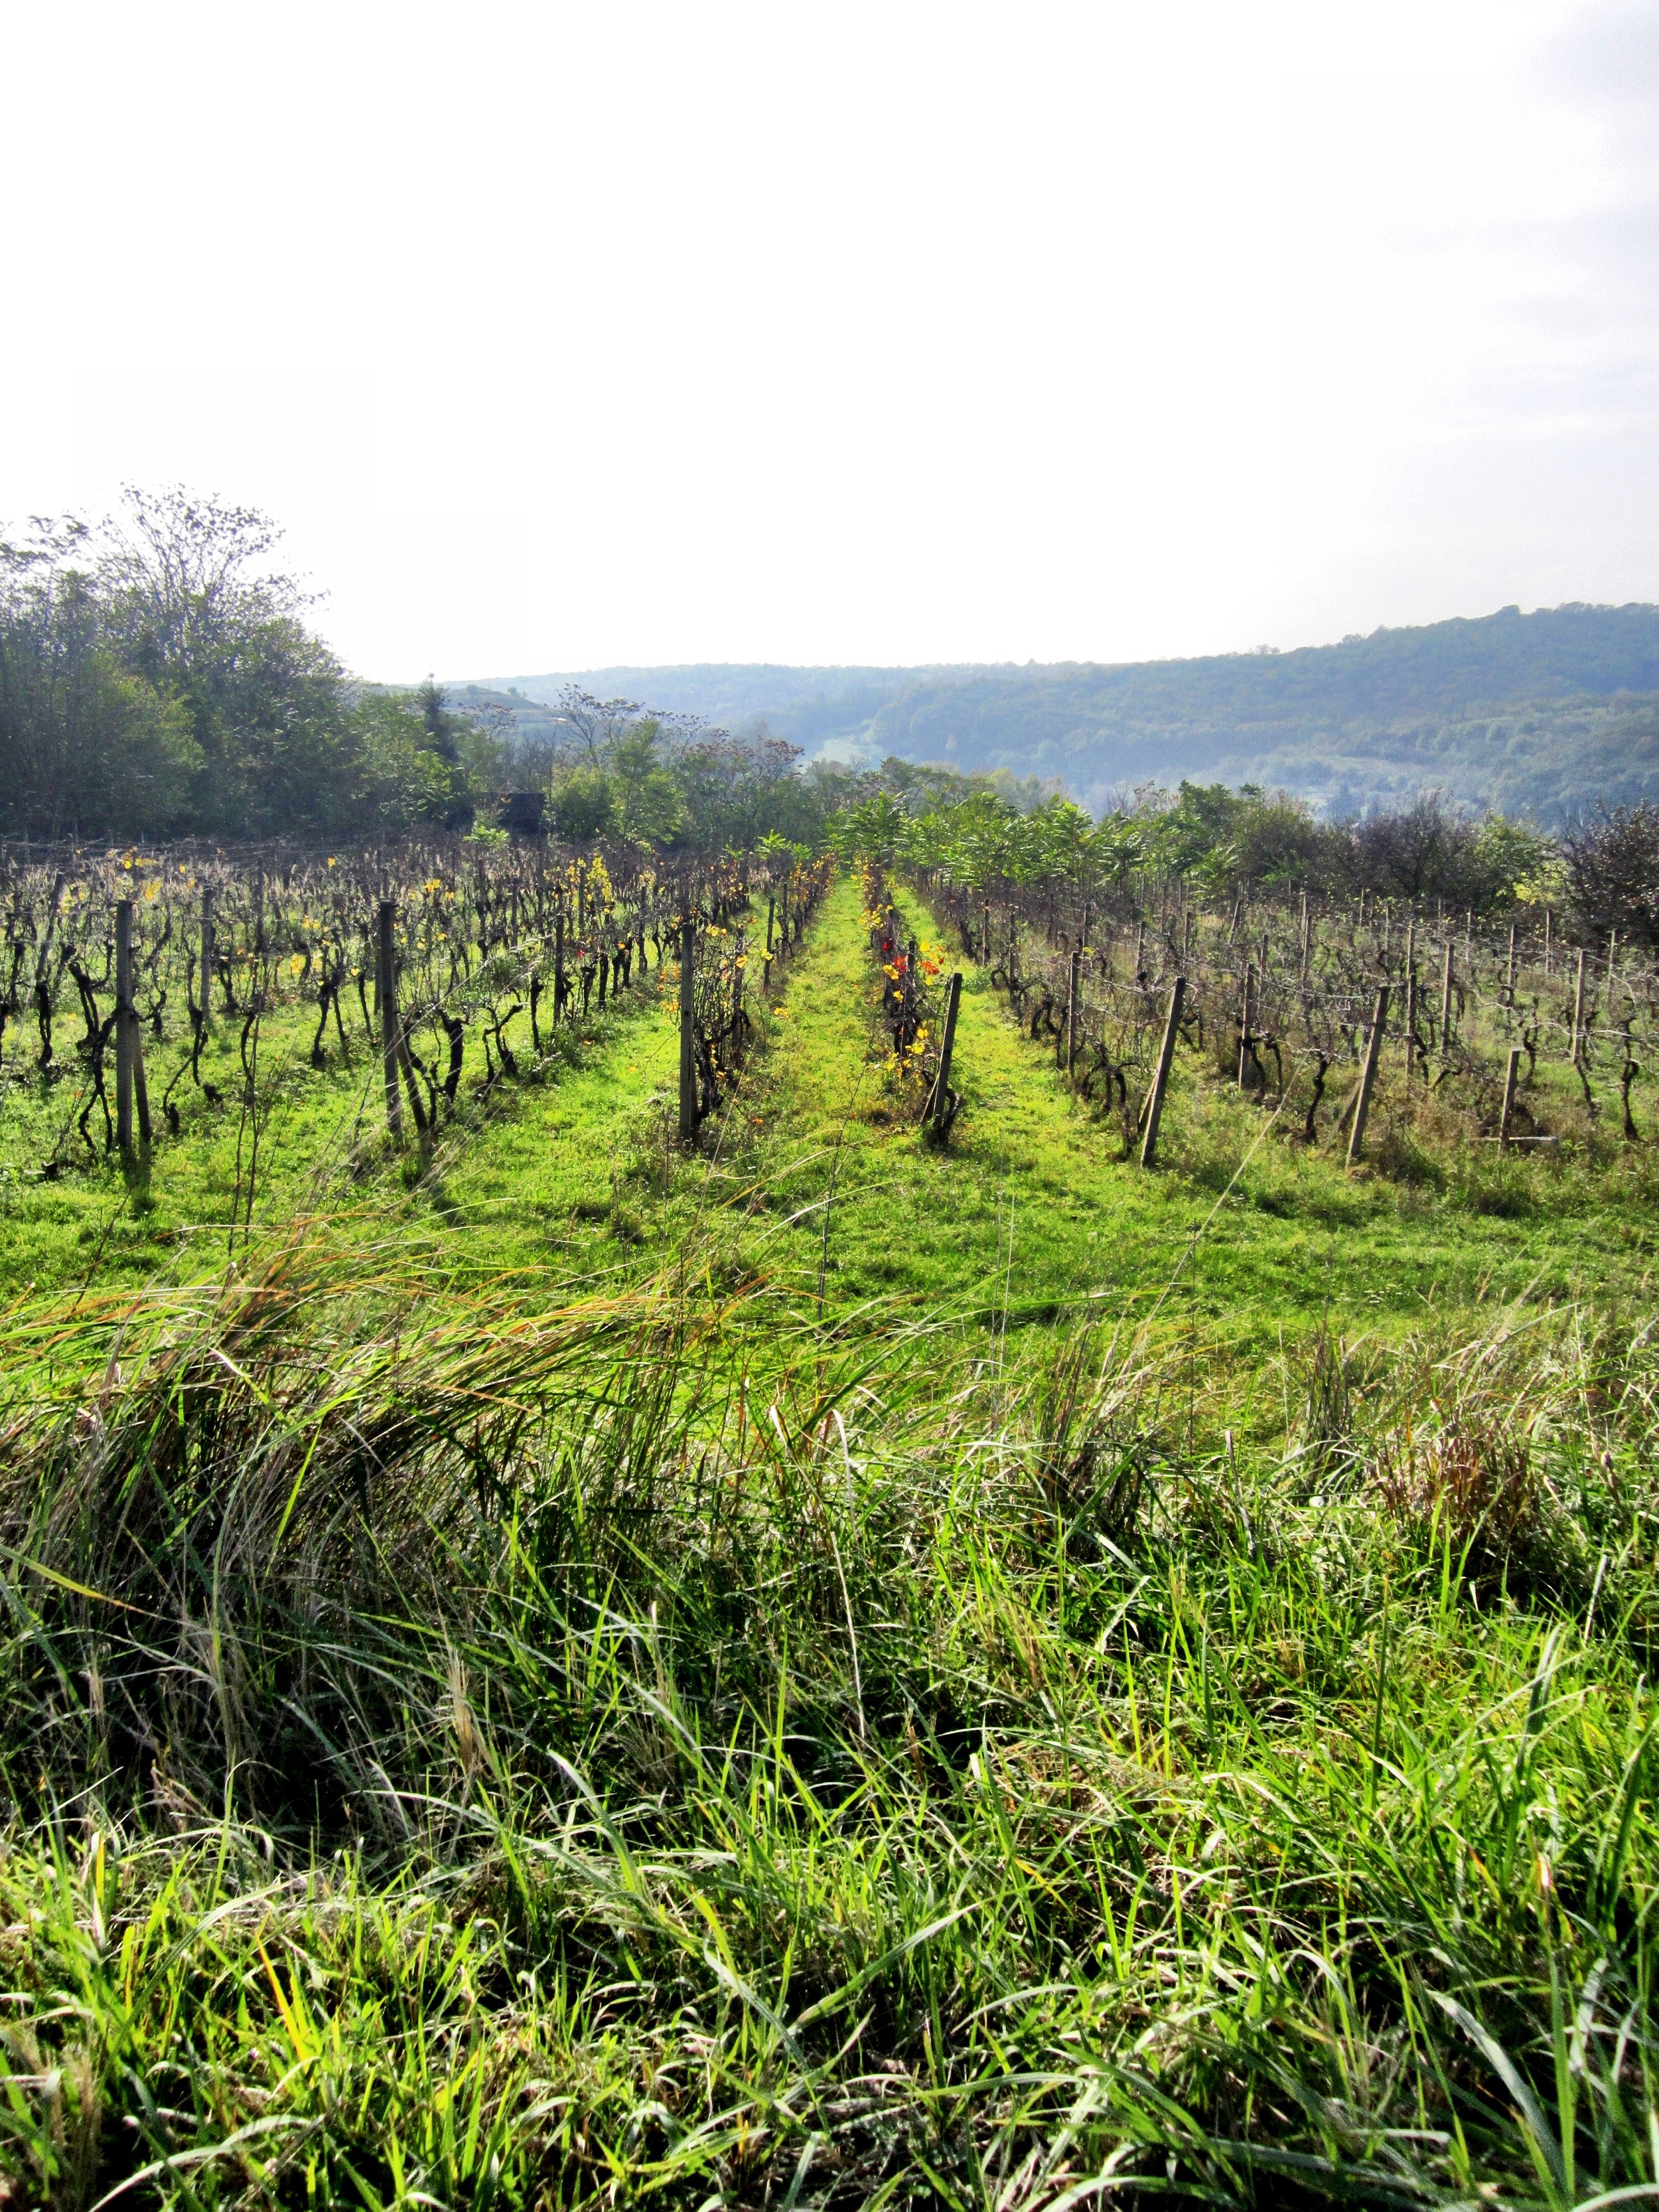 Looking out over the vineyards